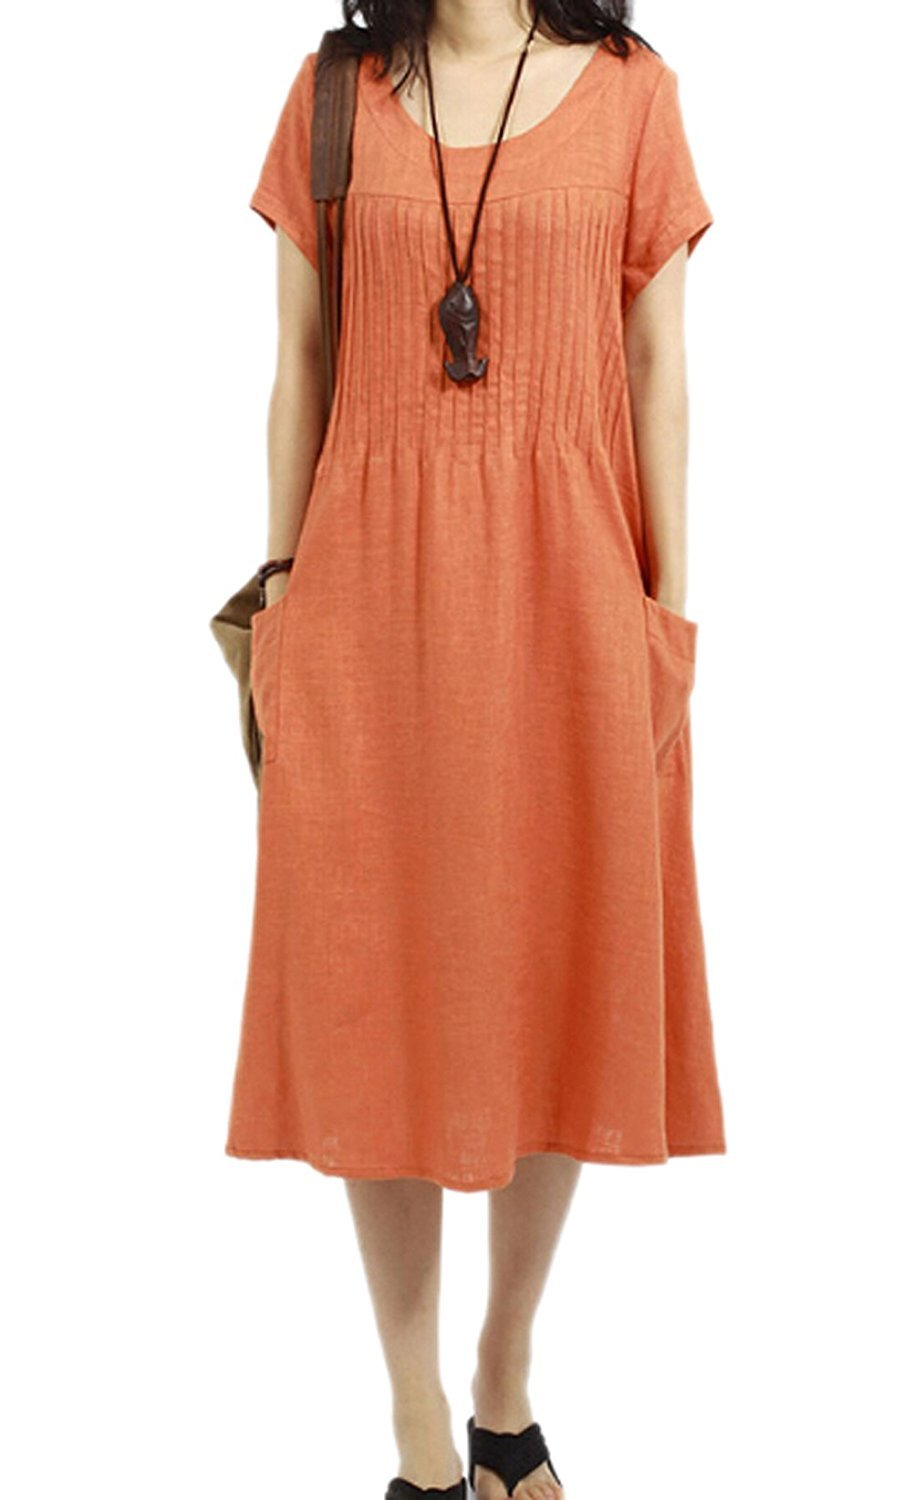 COCOUSM Womens Summer Loose Cotton Linen Pullover Dress at Amazon Womens Clothing store: